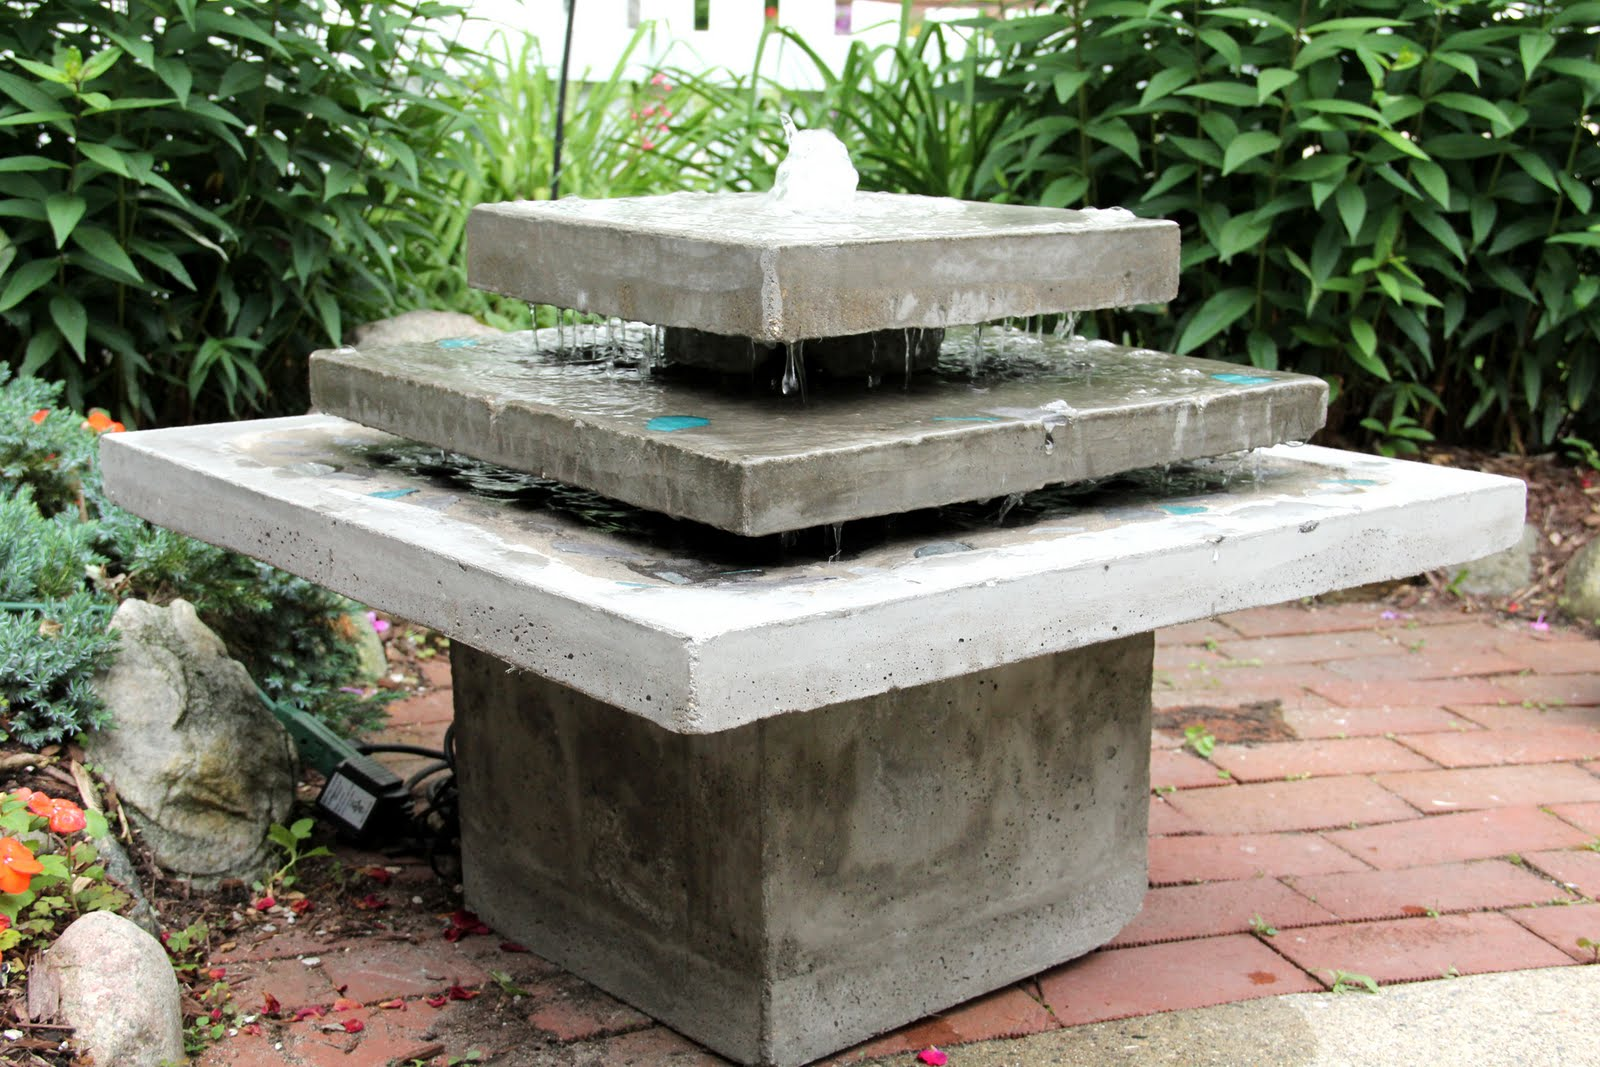 art studio: Introducing my three layer concrete fountain!